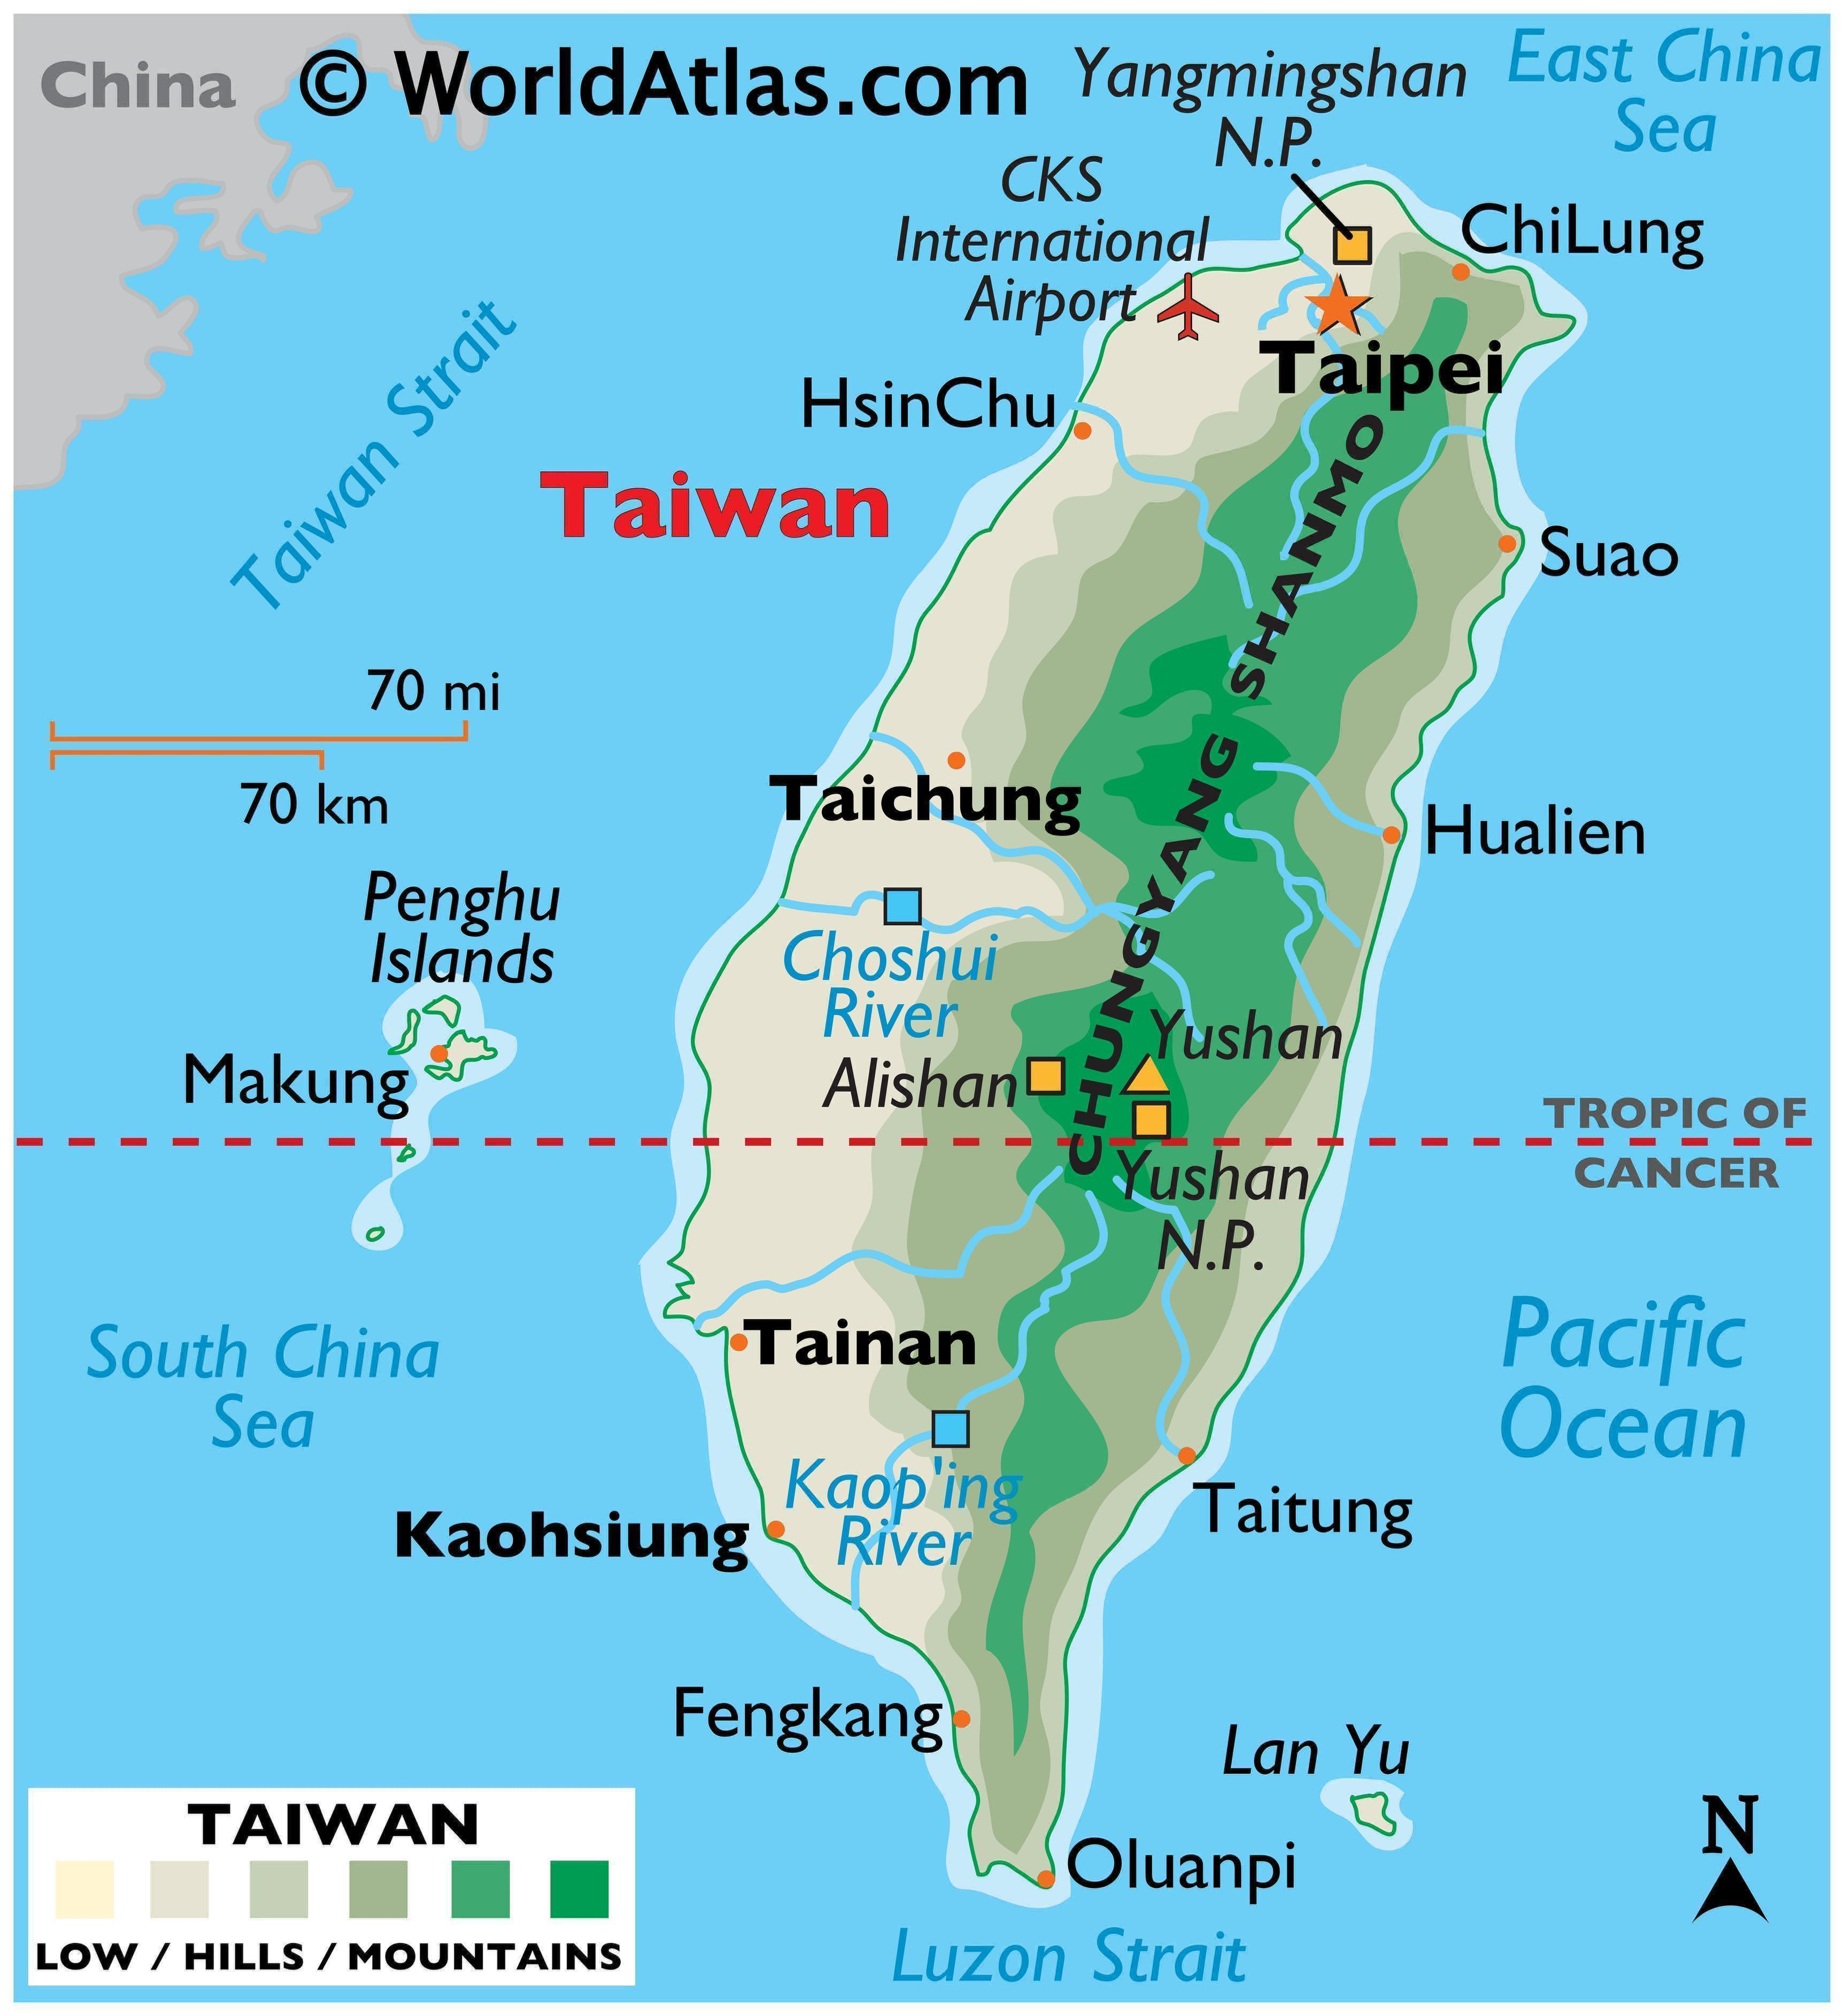 Physical Map of Taiwan with state boundaries, relief, major rivers, lakes, highland areas, highest peak, important cities, and more.